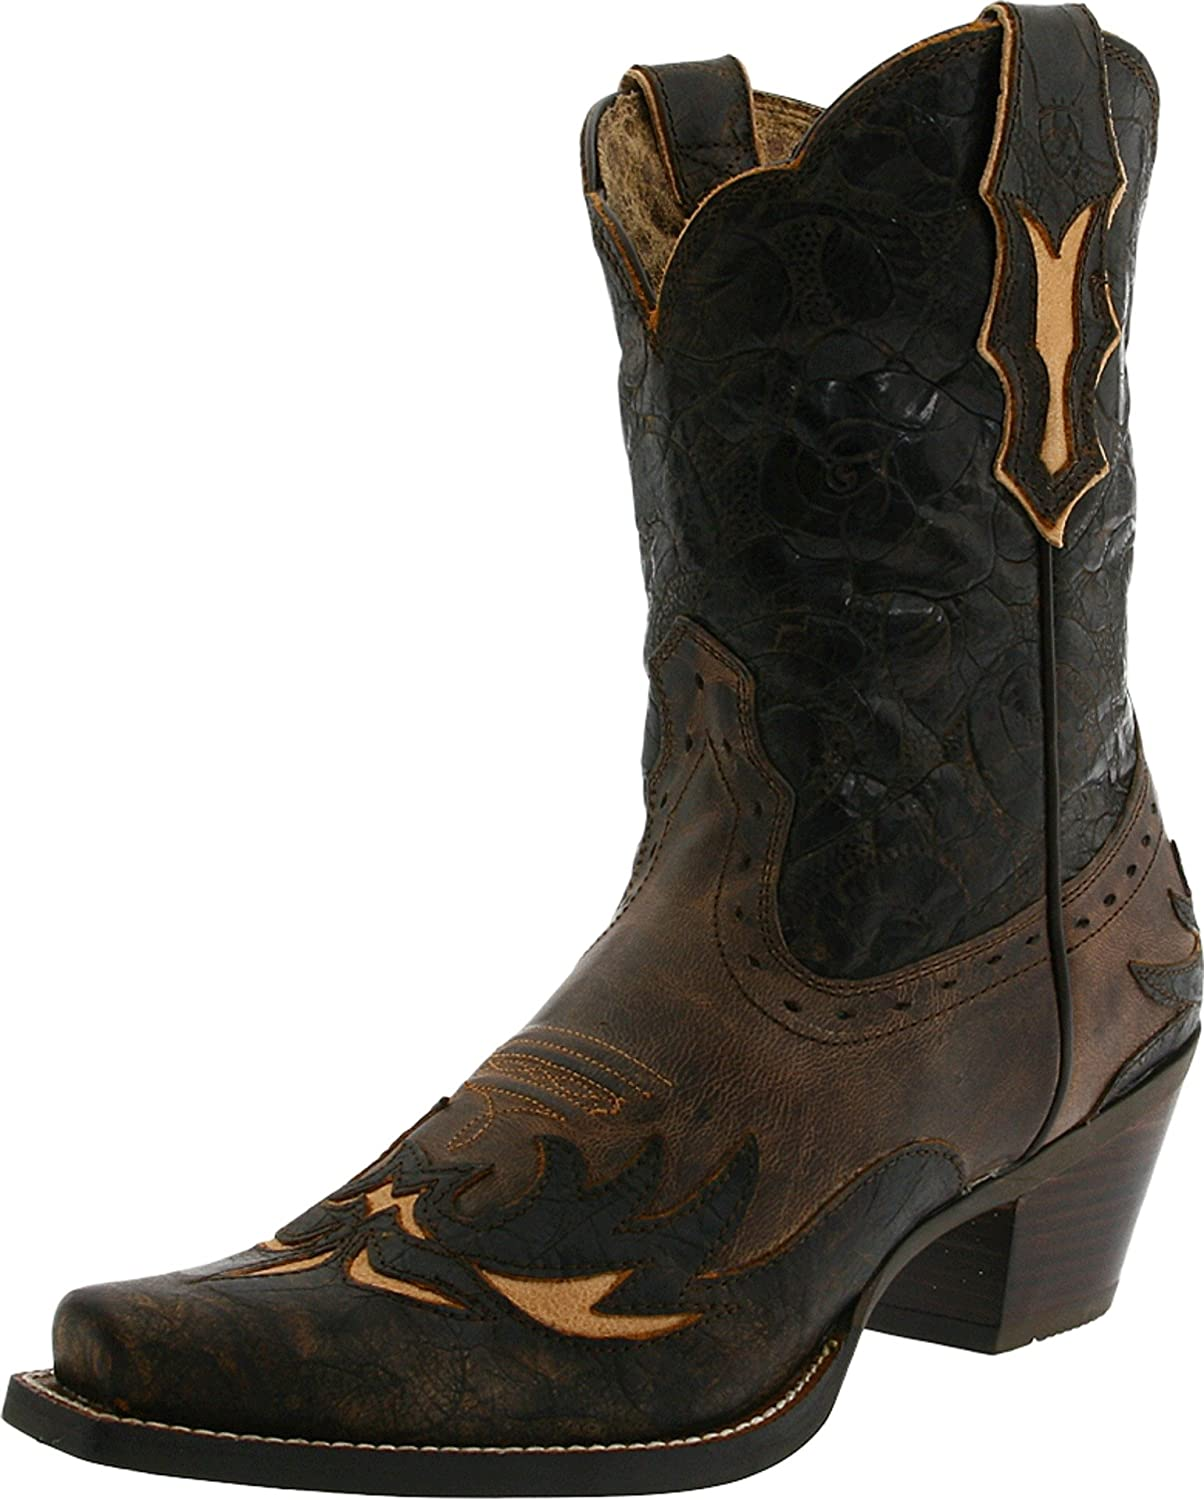 Ariat Women's Dahlia Western Cowboy Boot B004TF8PNQ 9 B(M) US|Silly Brown/Chocolate Floral